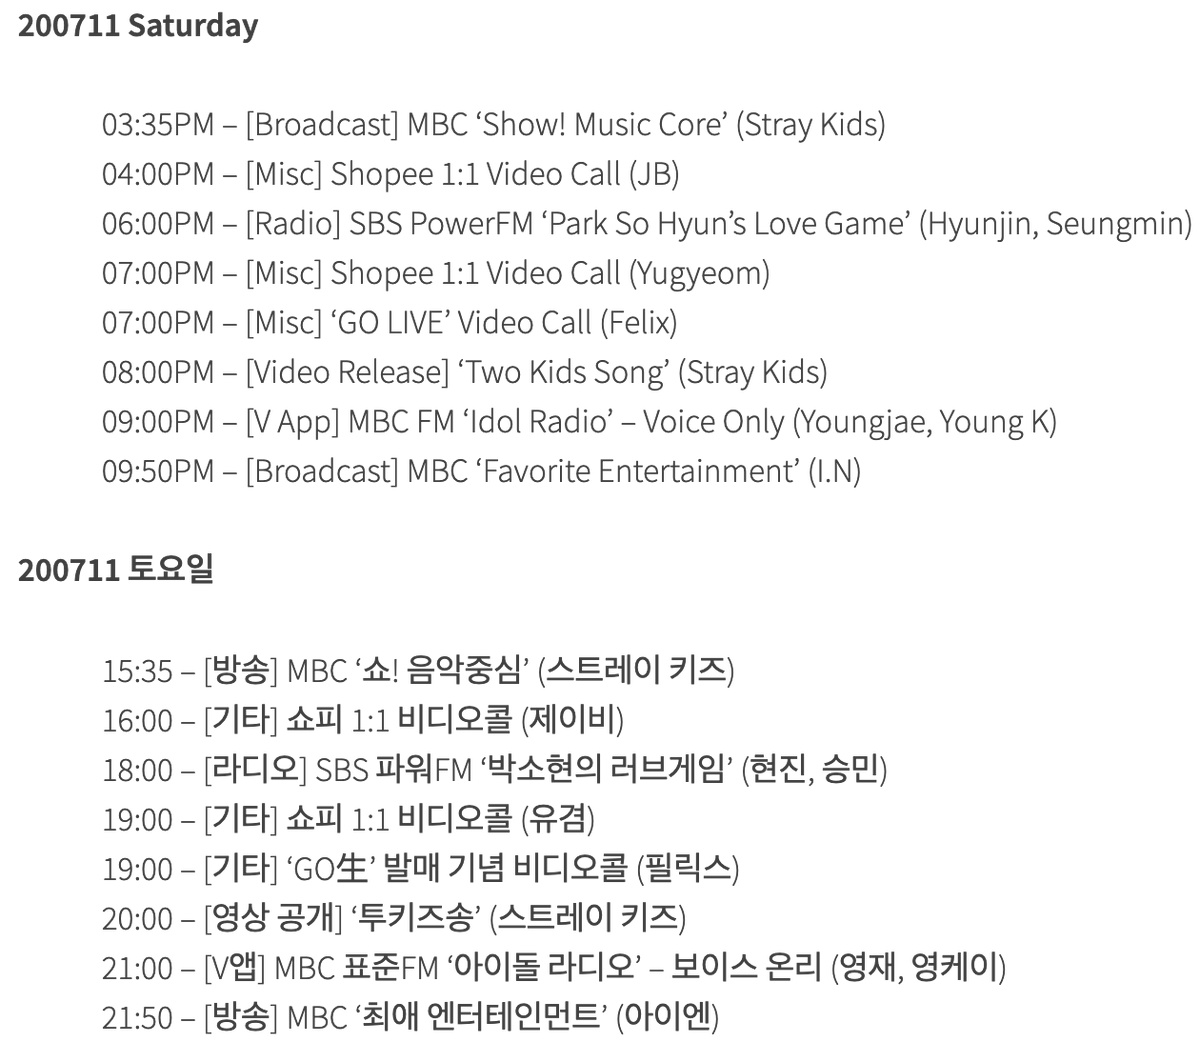 [200711 Saturday / 토요일] JYP Nation Schedule / 스케줄 All times in KST. SUBJECT TO CHANGE.